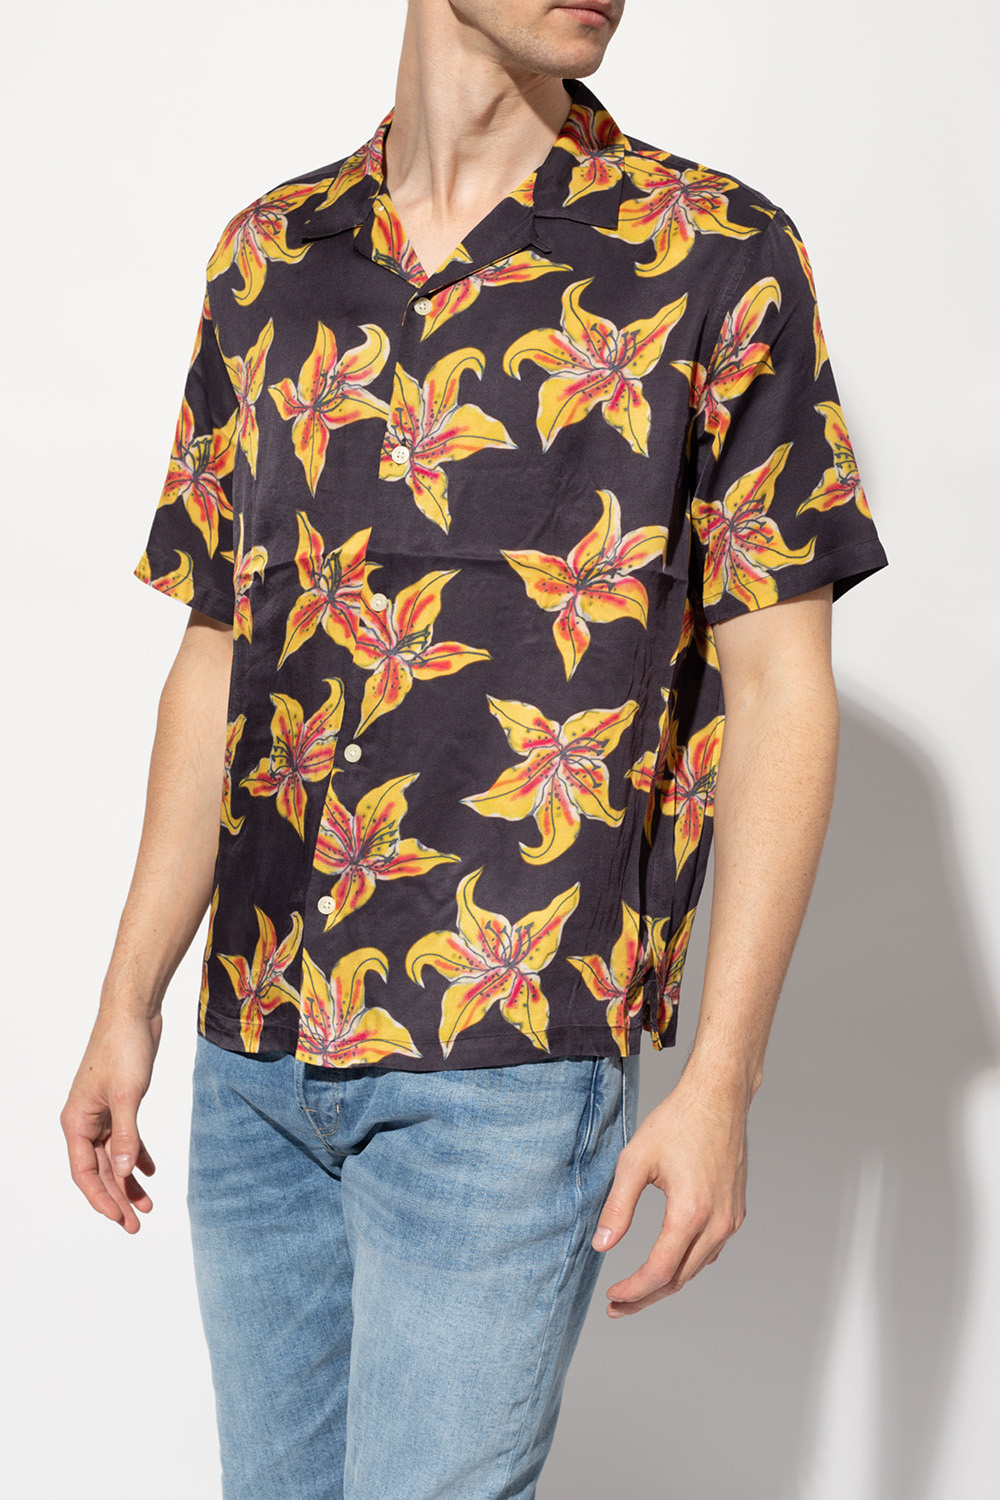 AllSaints 'Hibiscus' shirt with short sleeves